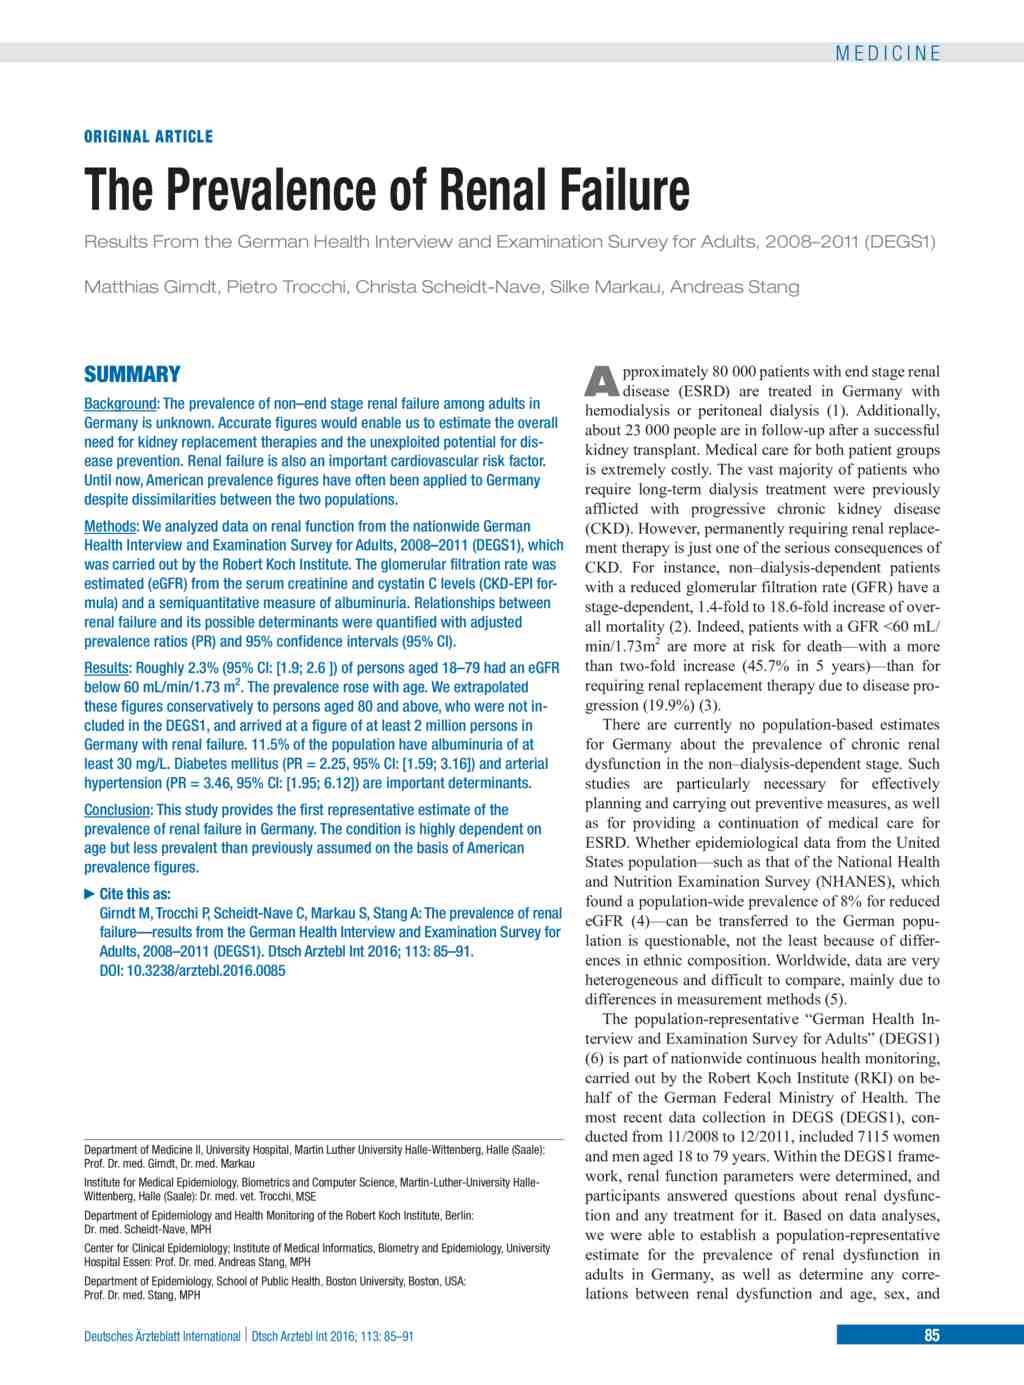 The Prevalence Of Renal Failure 12 02 2016